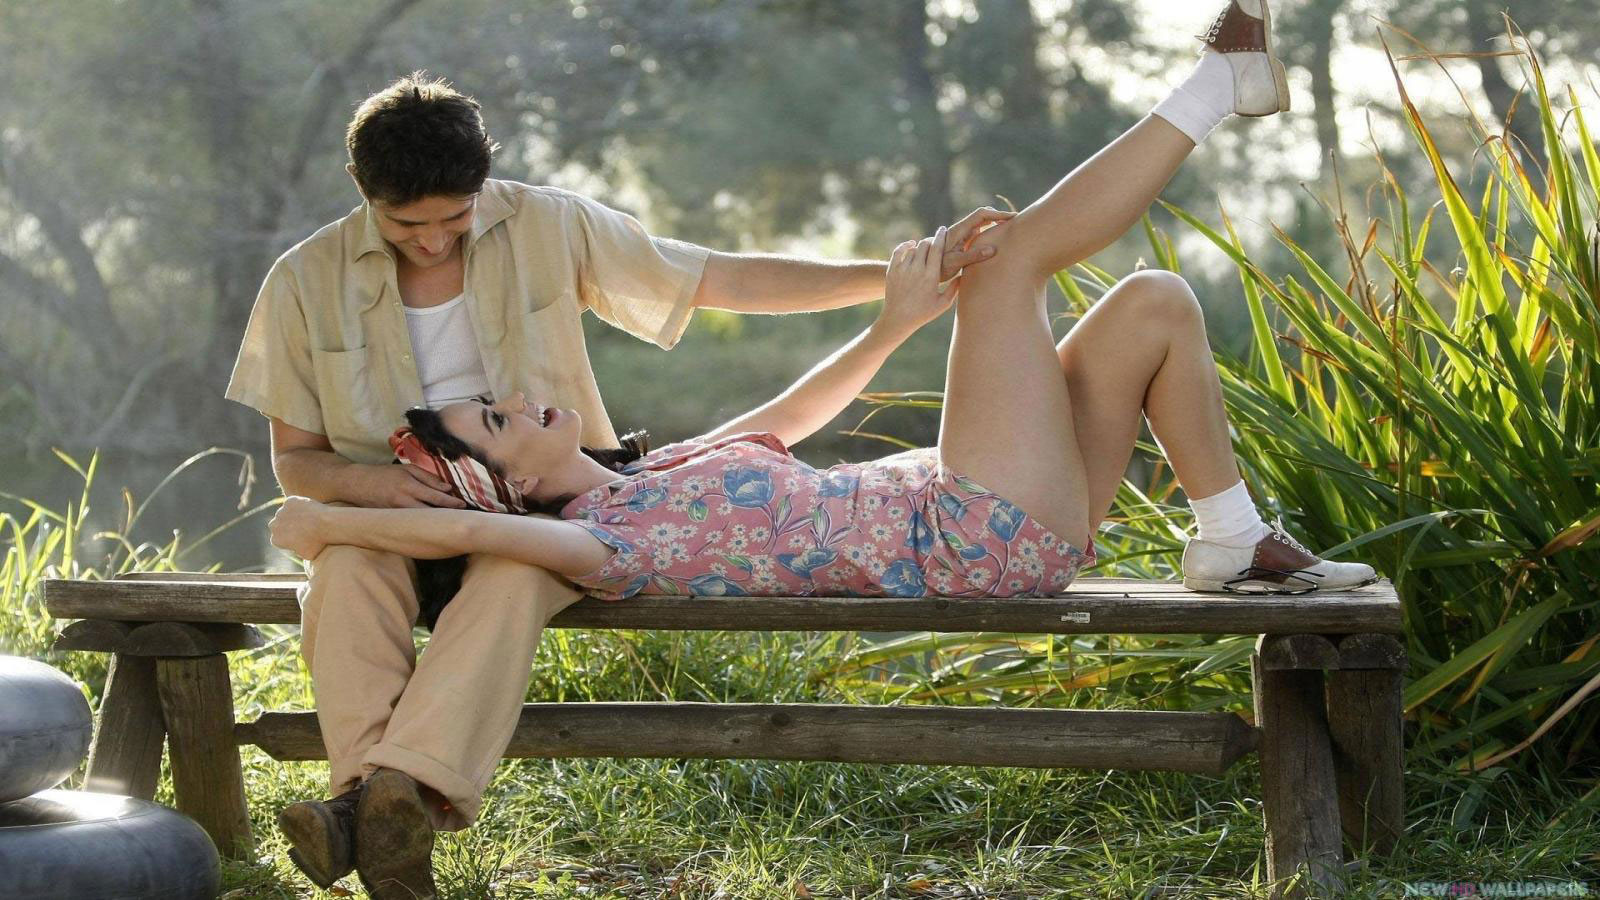 Romantic-Mood-Love-Couple-in-Park-HD-Wallpapers-in-HD